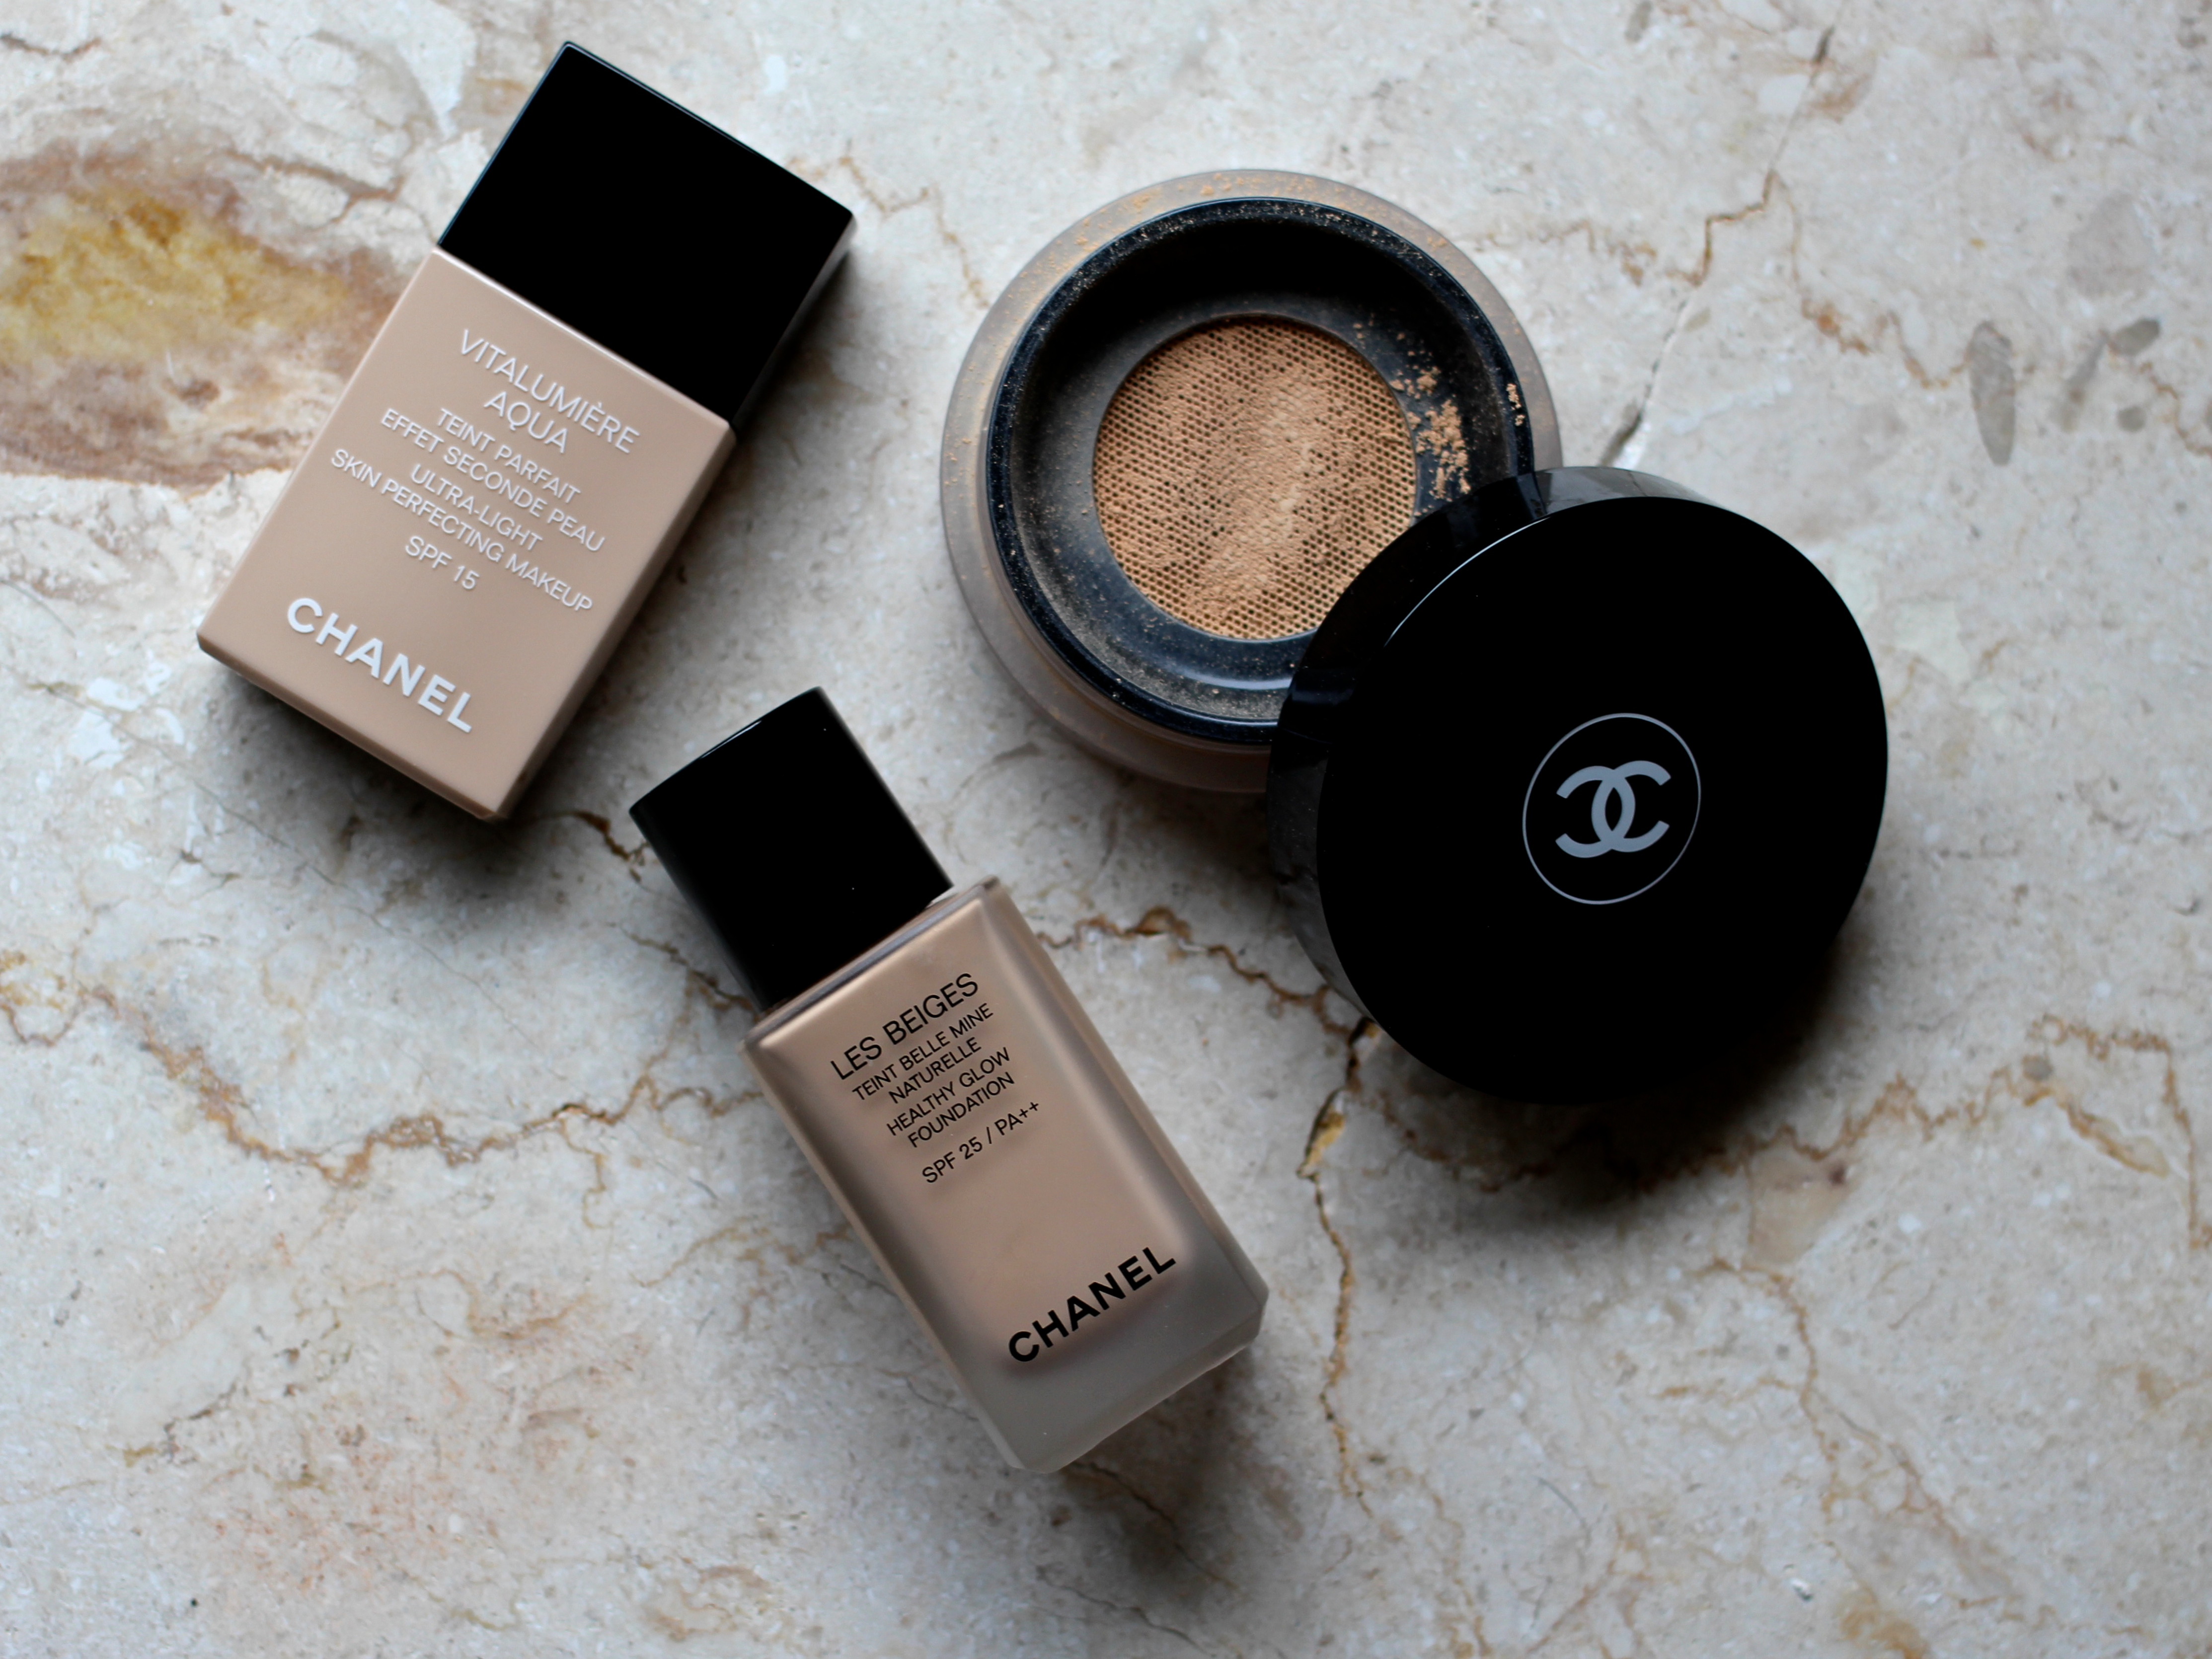 Top Chanel Foundation